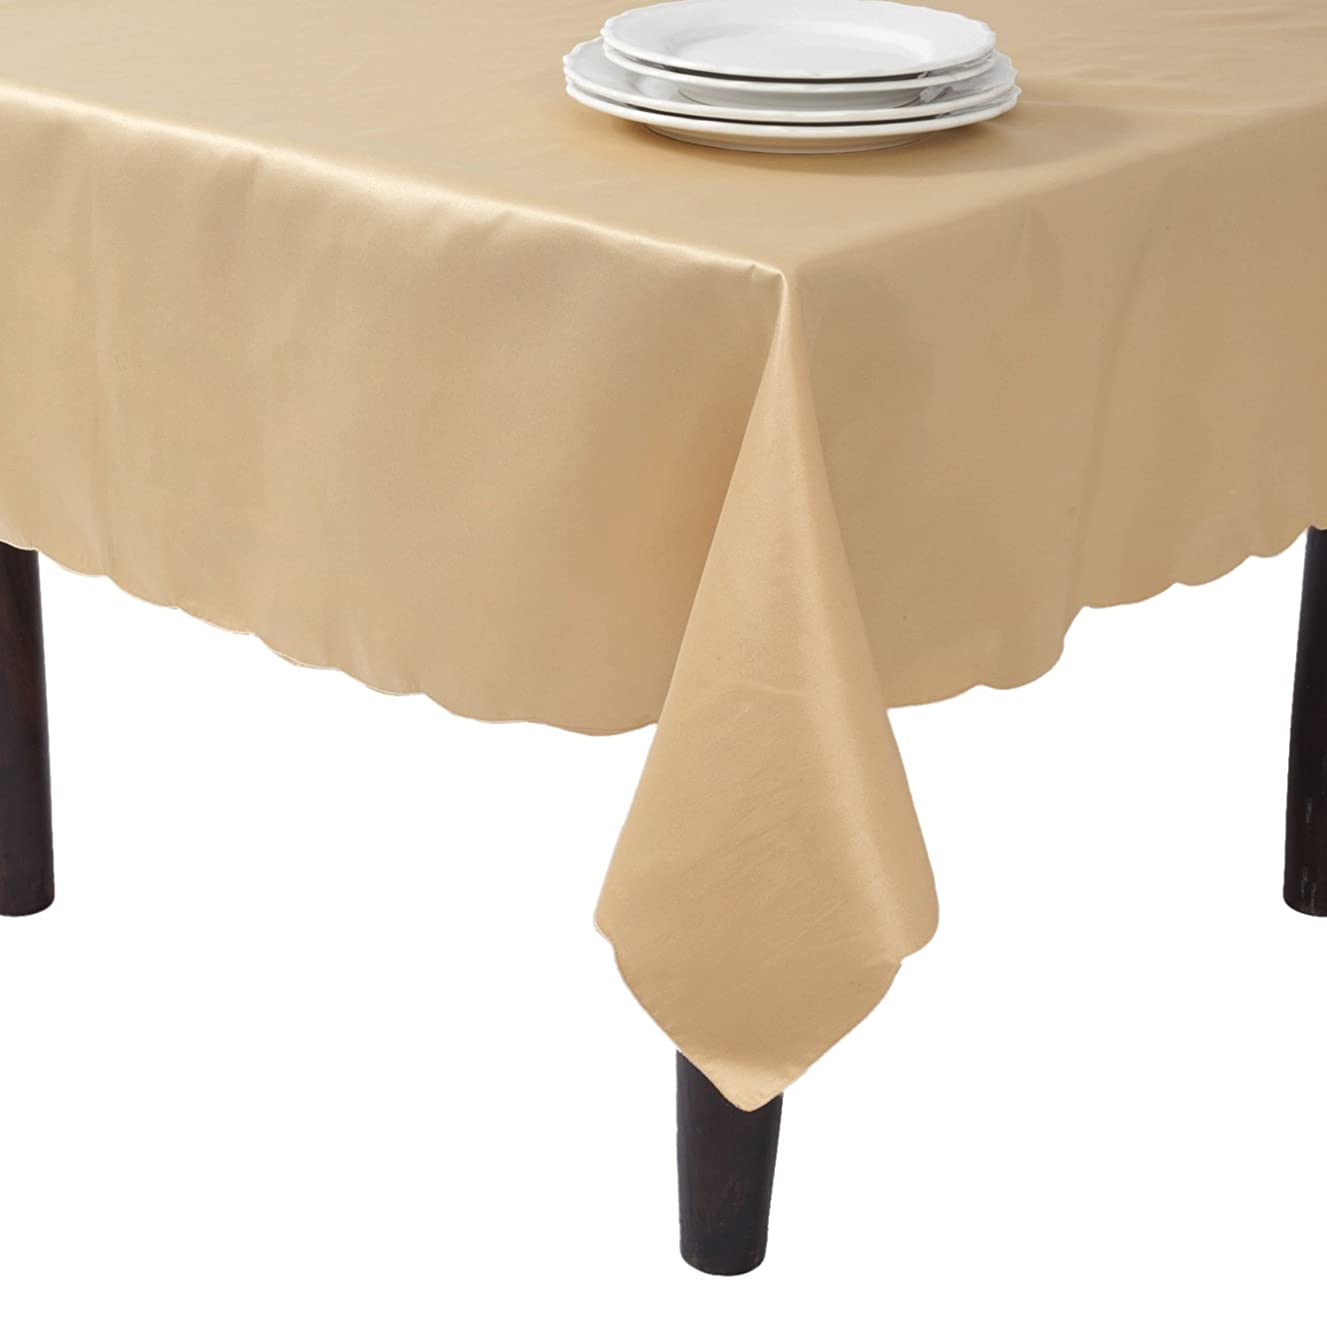 SARO LIFESTYLE LN201.GL65180B Tablecloth Liners With Satin Sheen and Scalloped Edge, Gold, 65